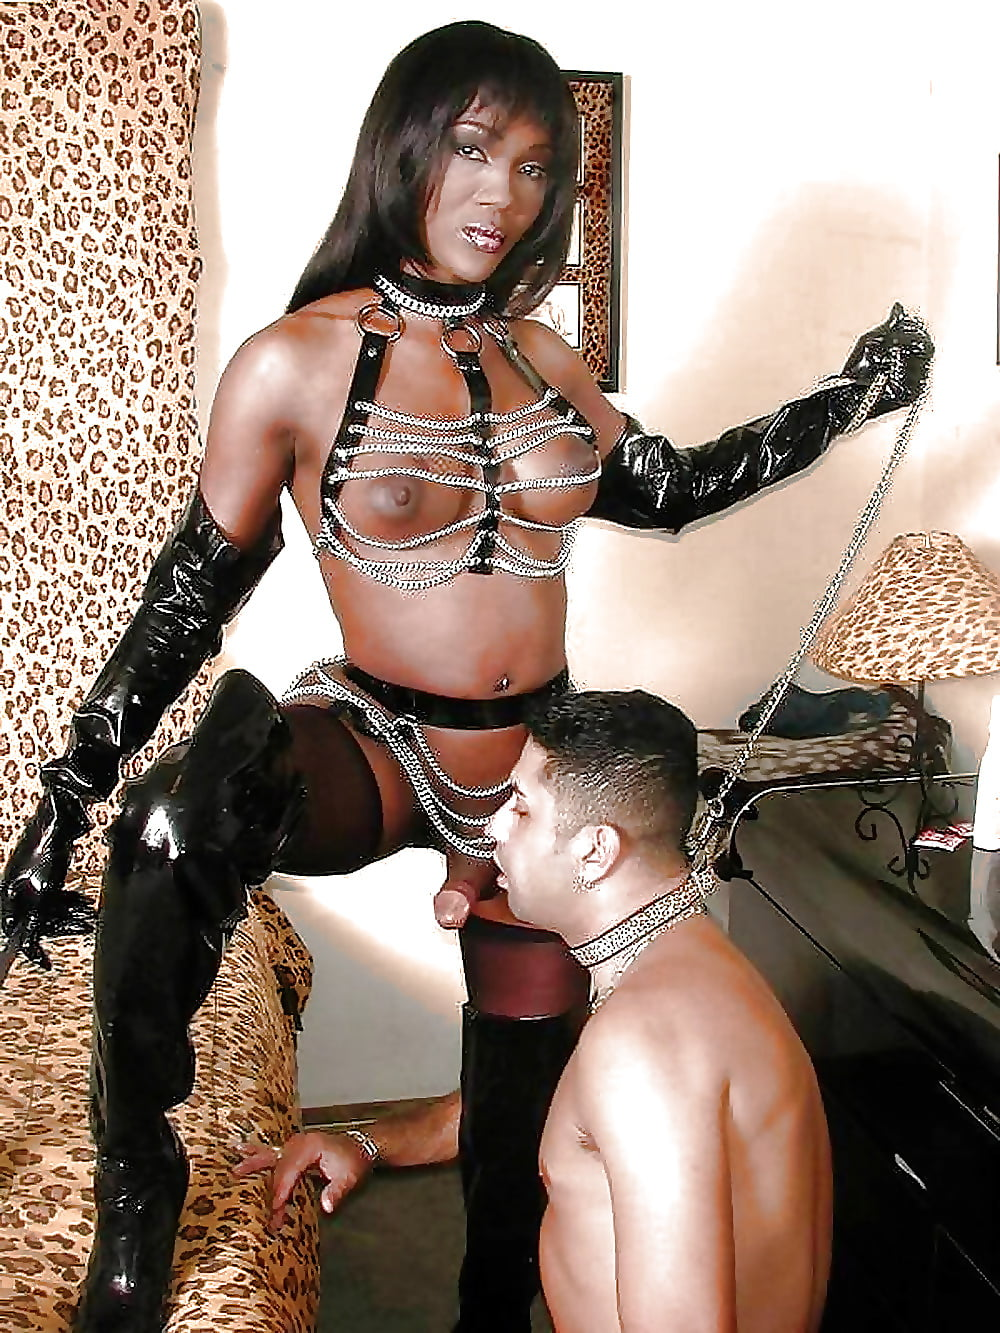 Shemale sex pics with black domination